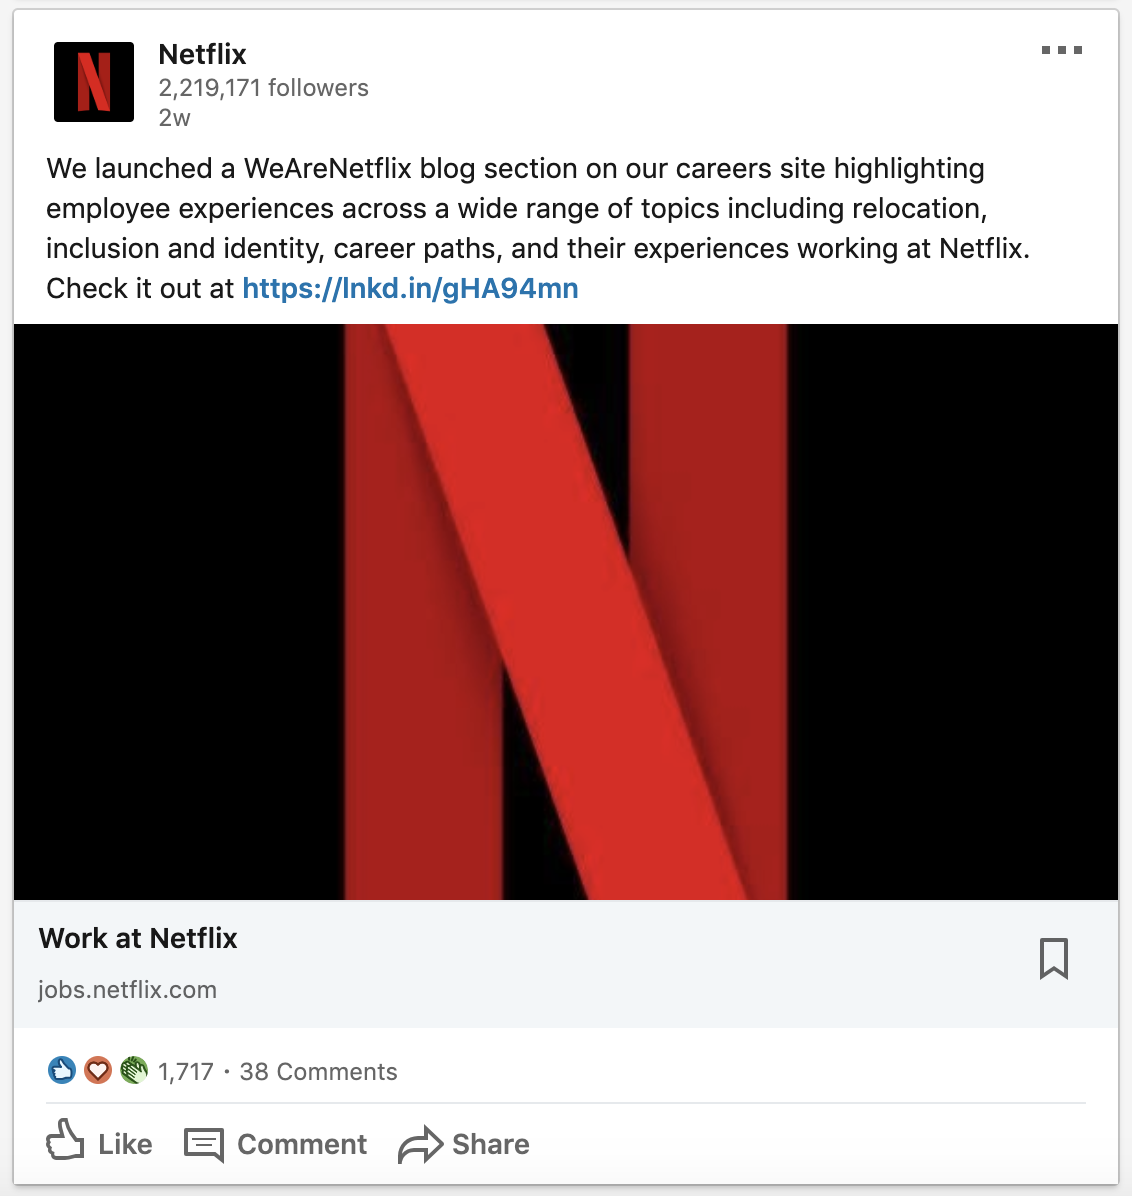 Netflix activating their employer brand on LinkedIn can play a role in their high volume recruiting strategy.